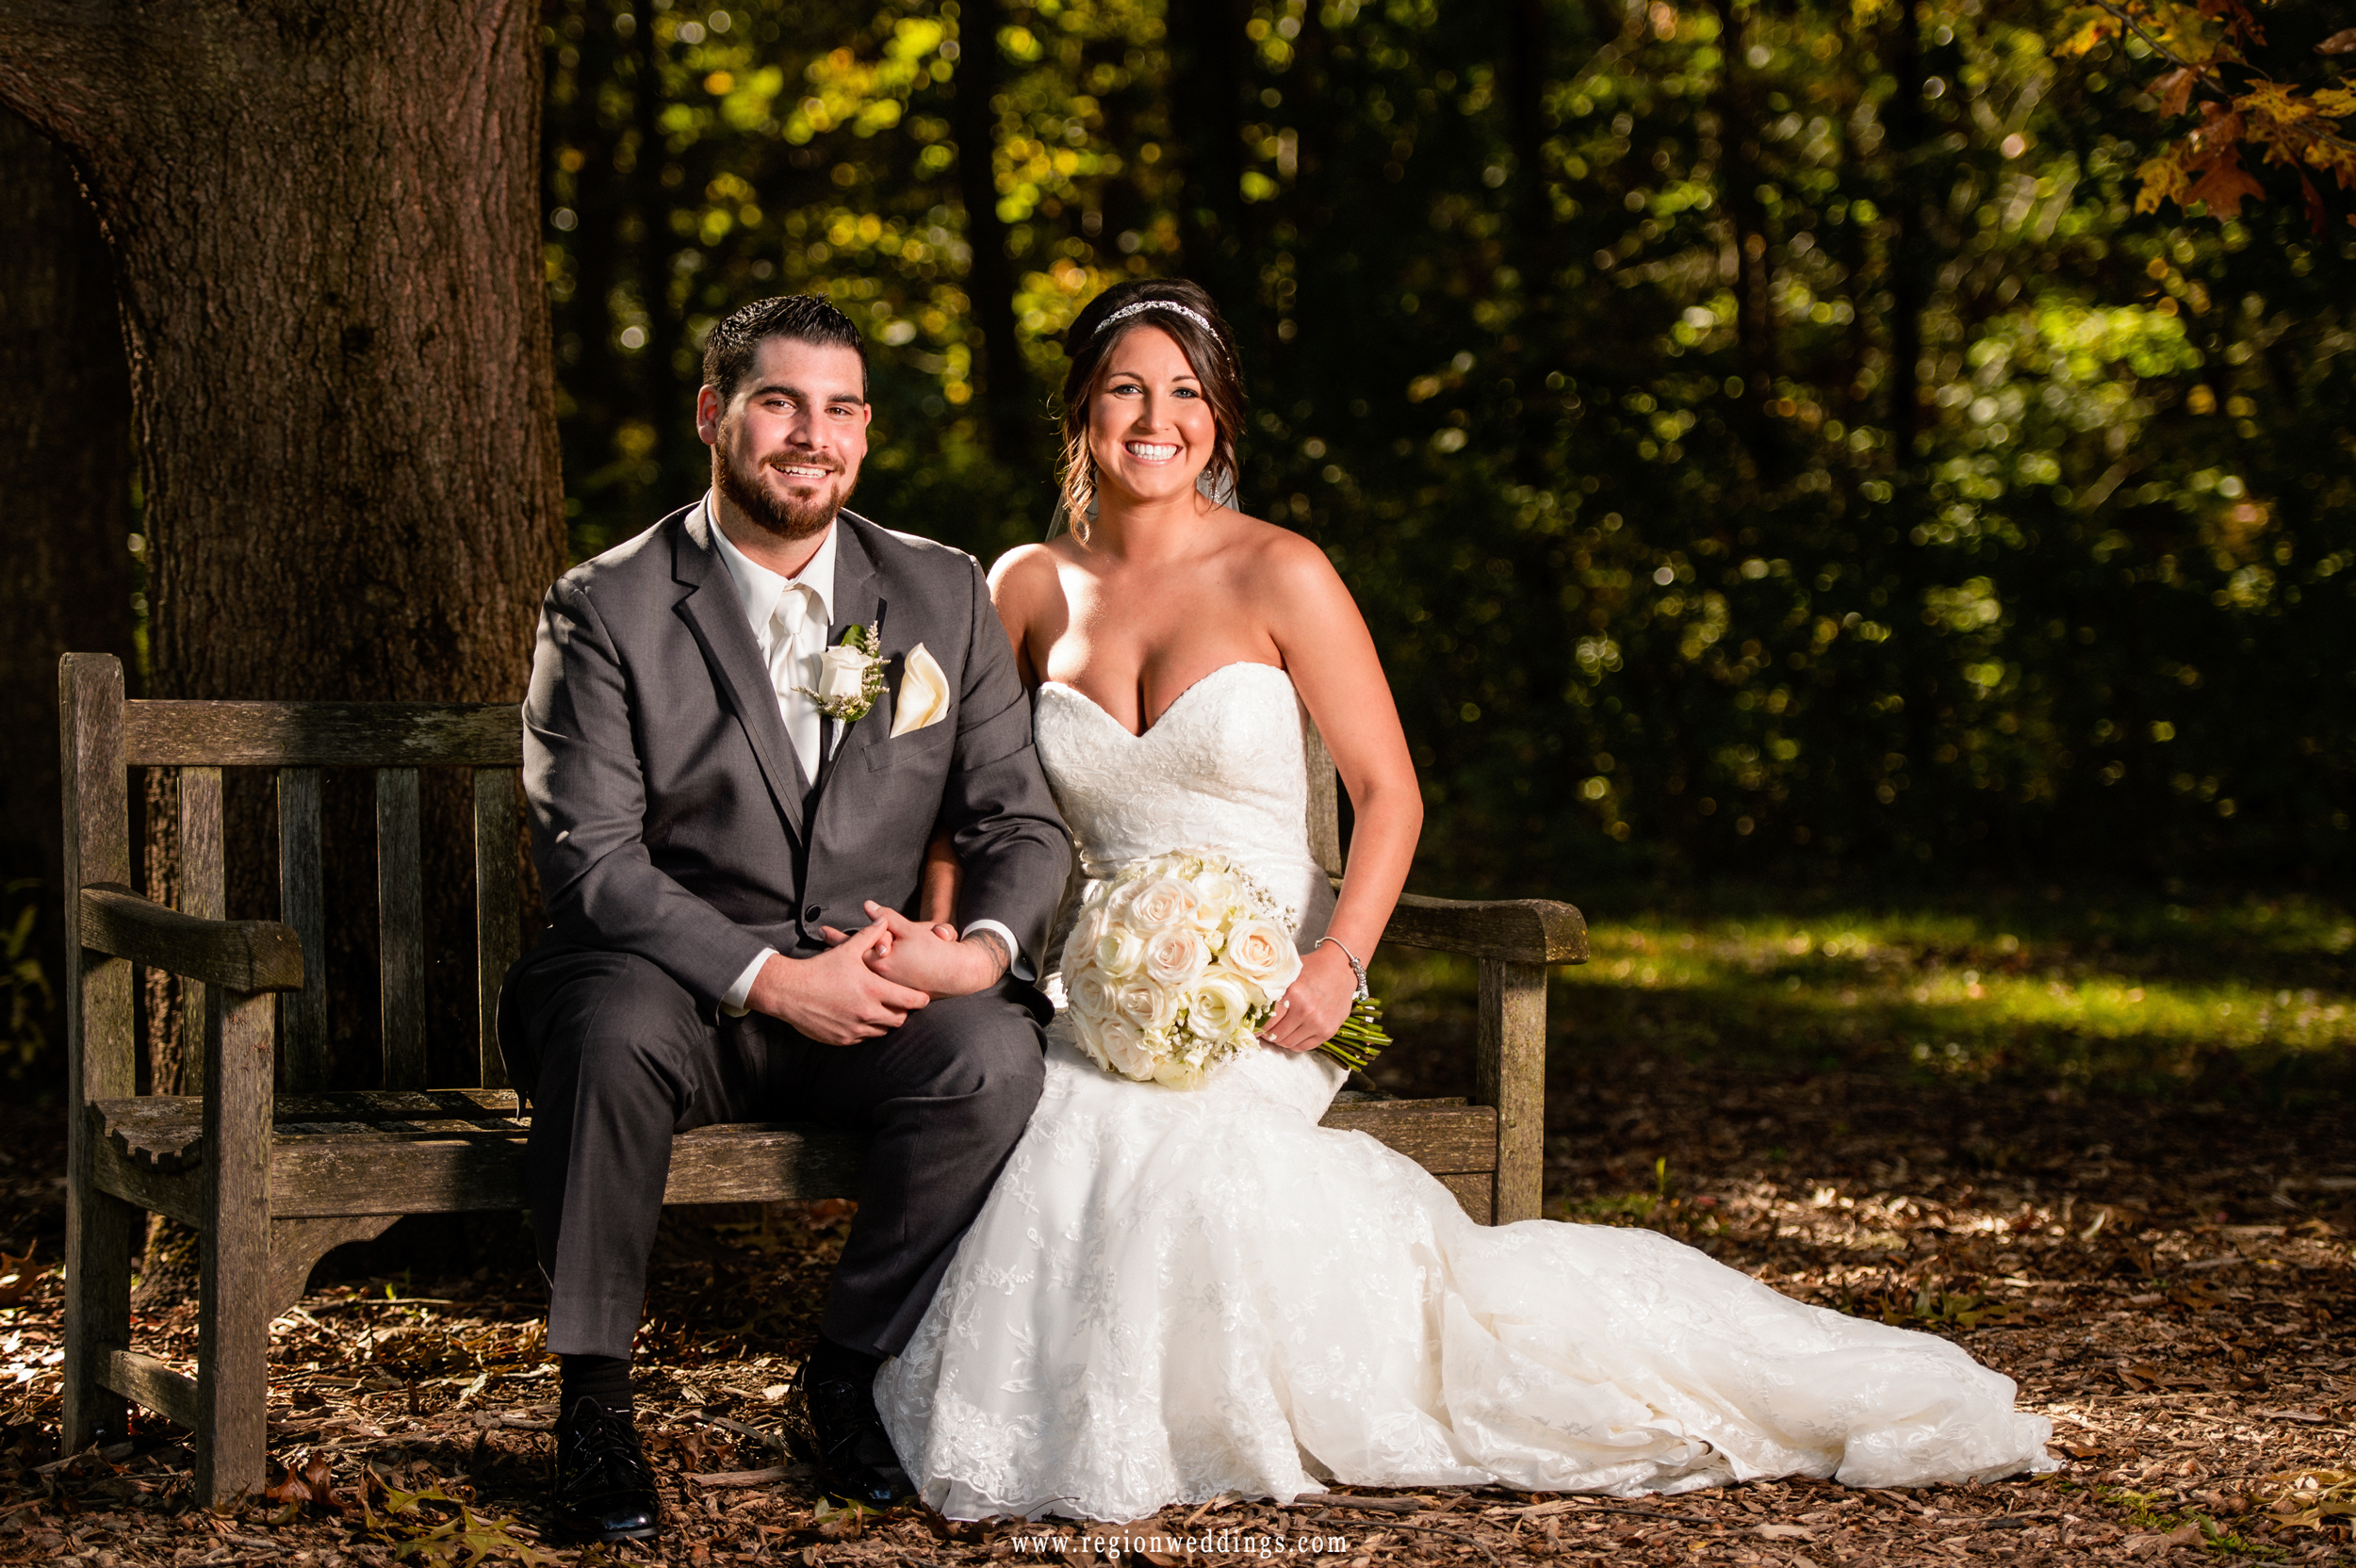 The bride and groom take a break on a bench at Taltree Arboretum.